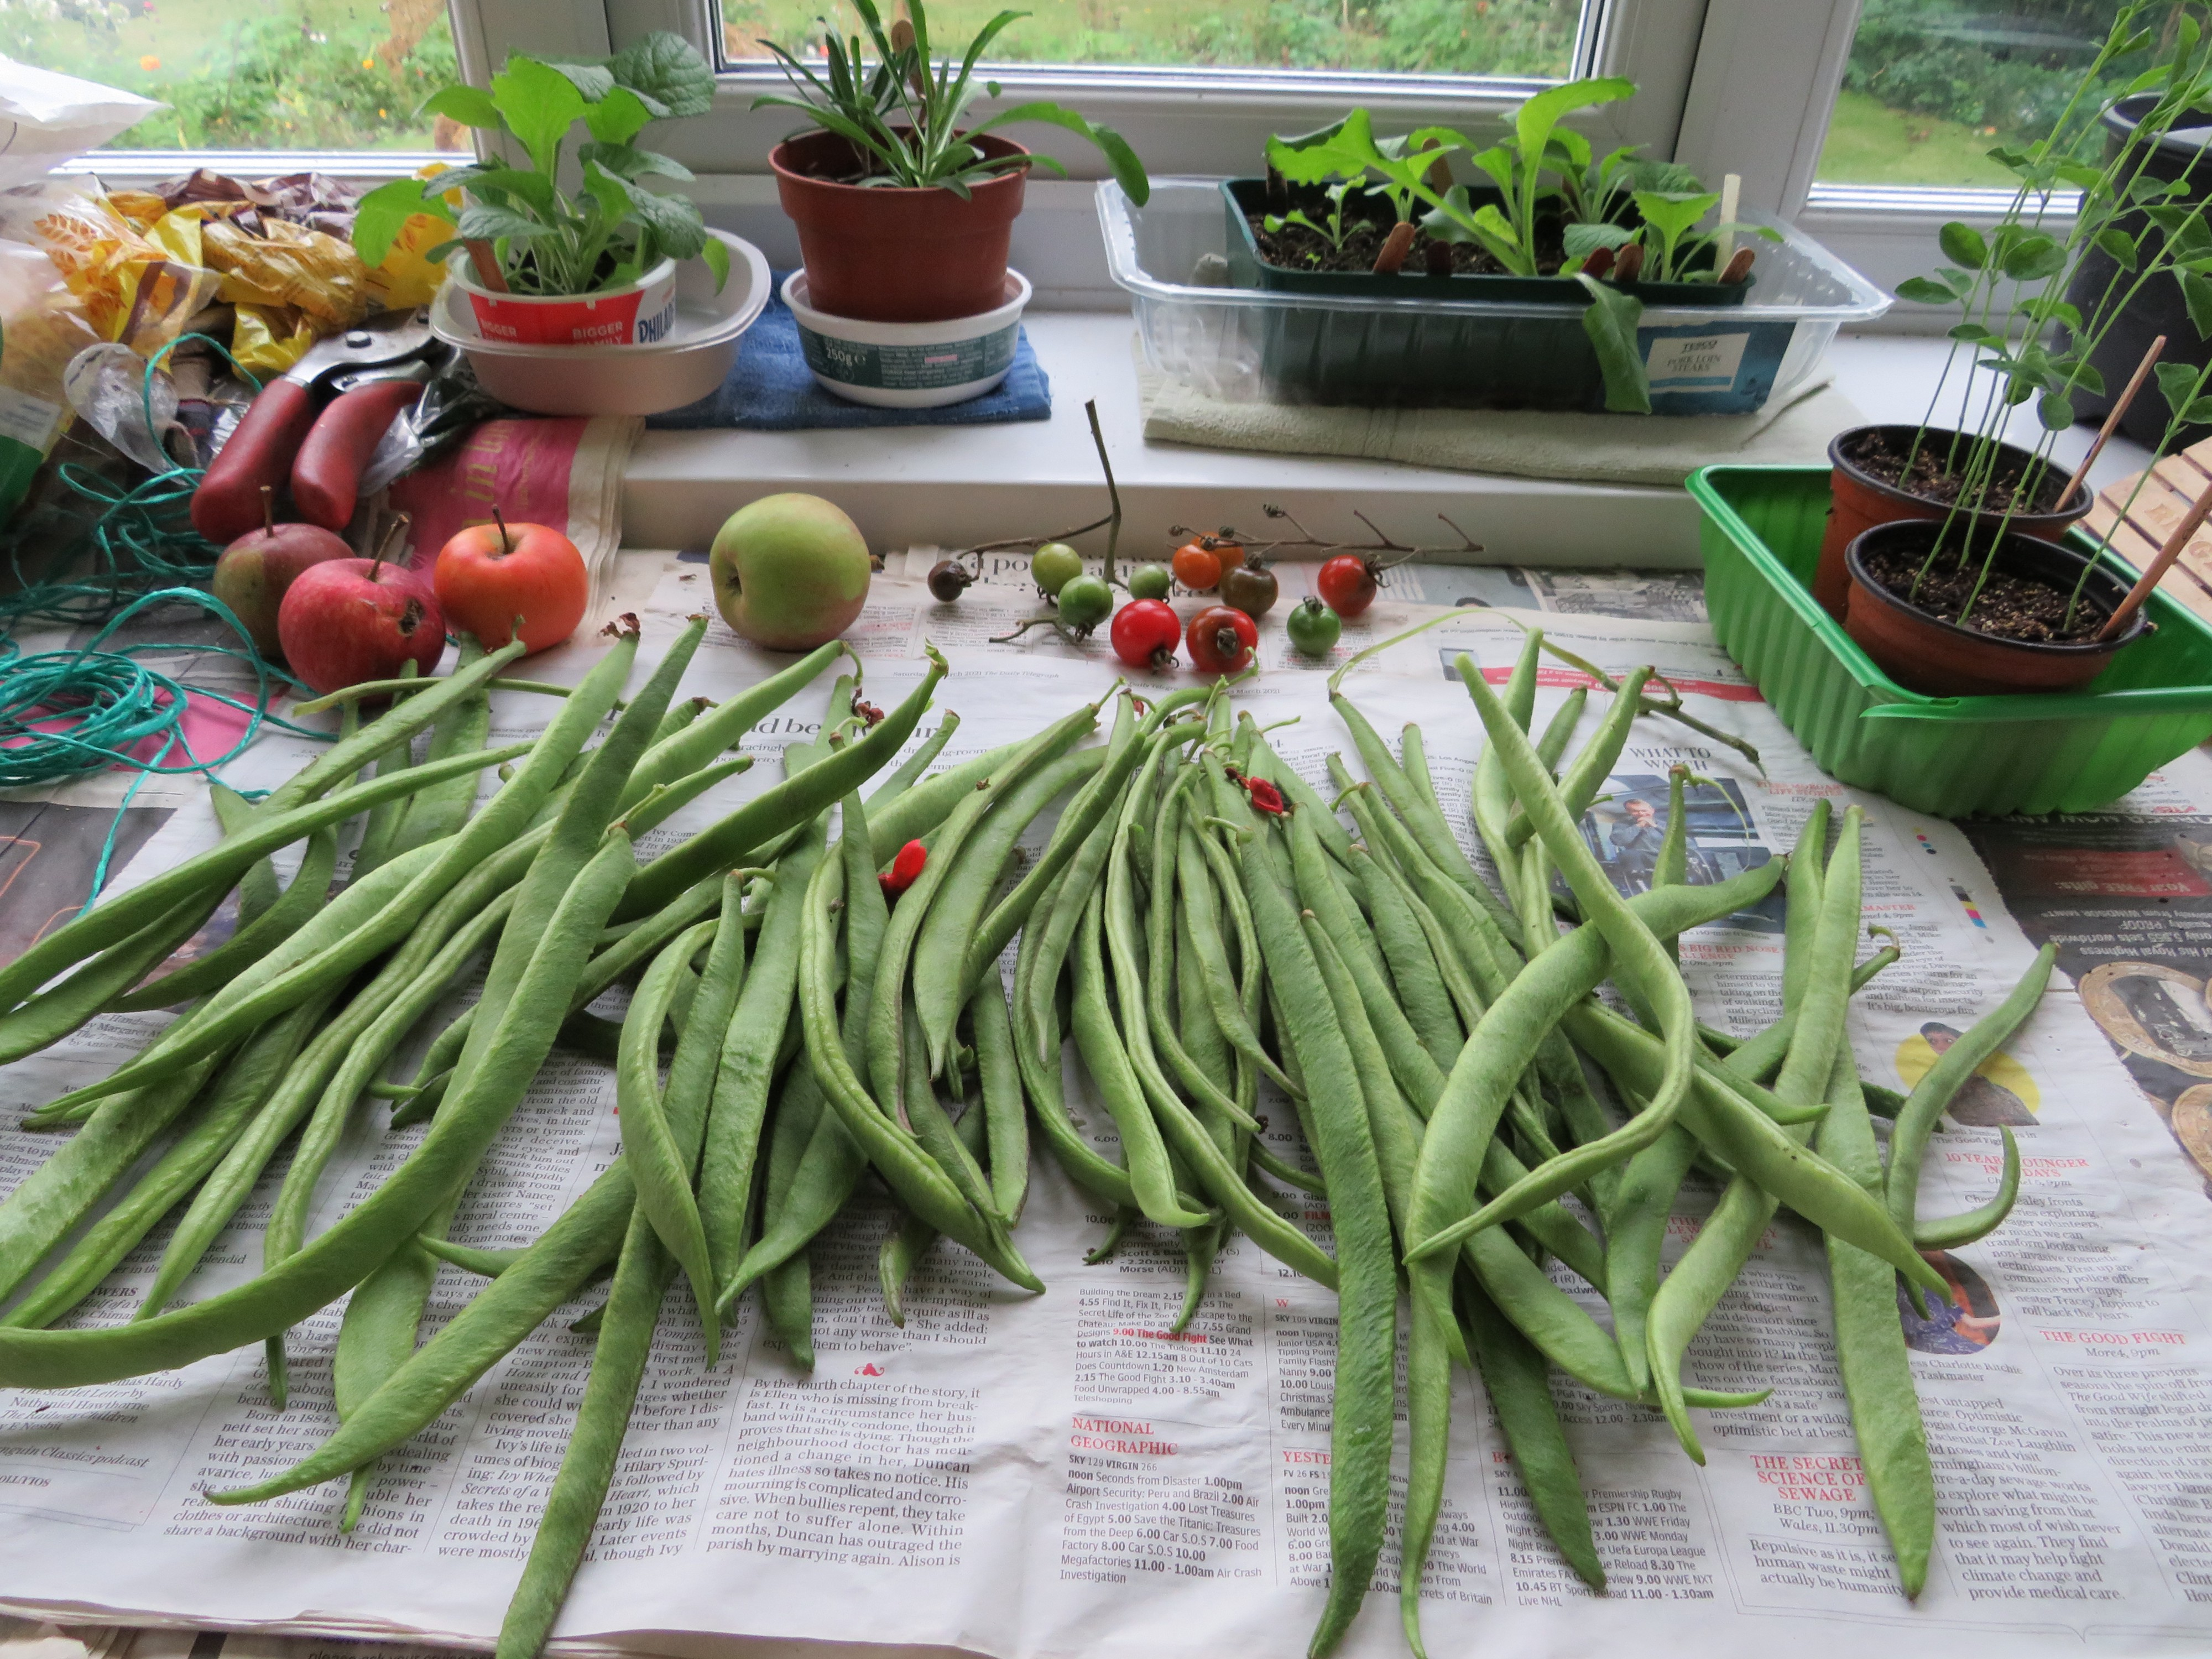 A harvest to runner beans laid out on newspaper below a window.